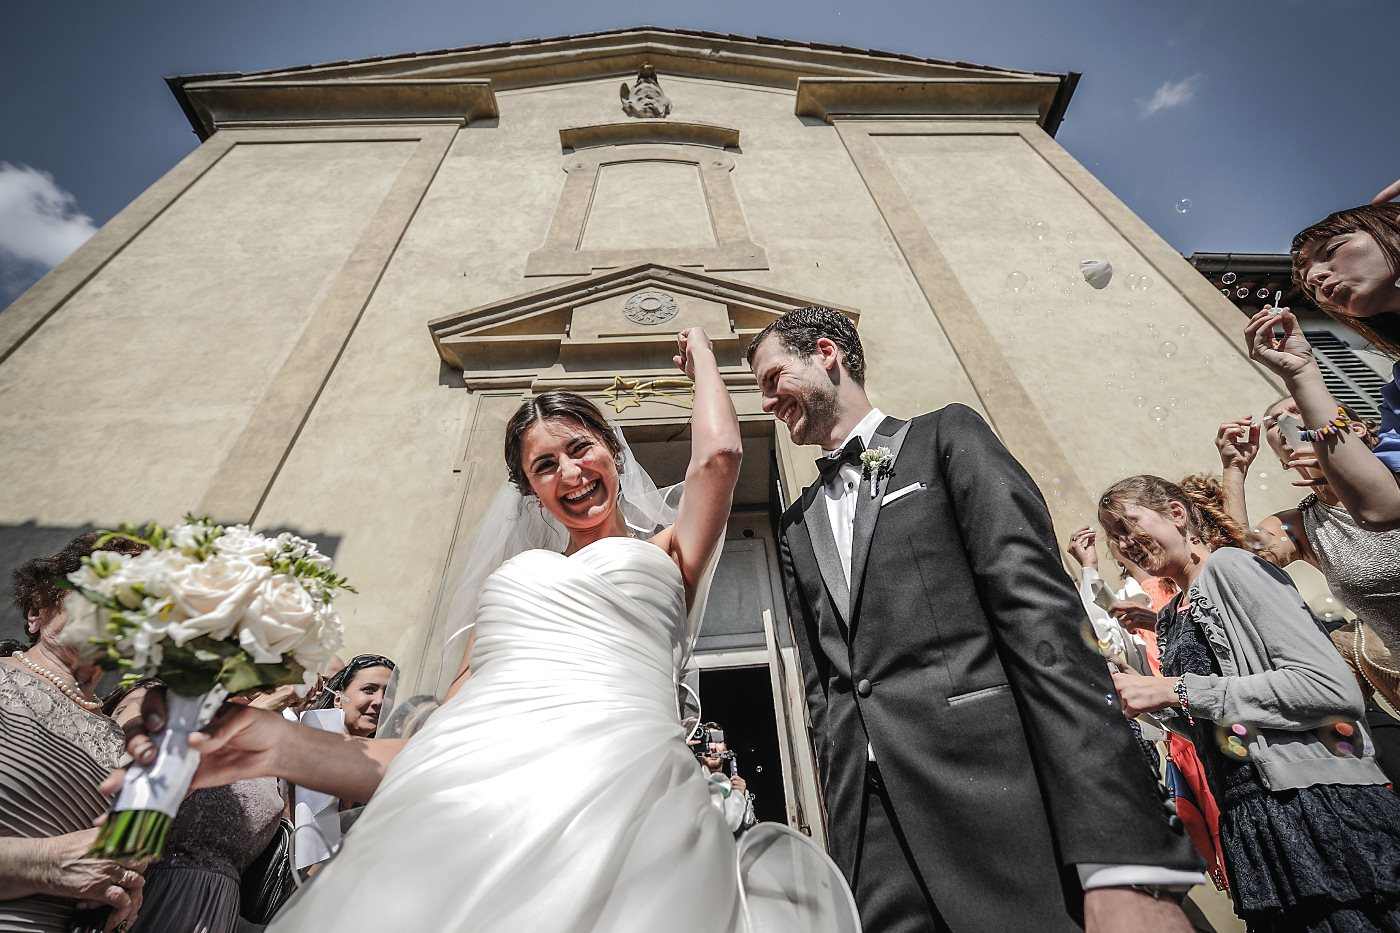 wedding photo villa le piazzole_08.jpg